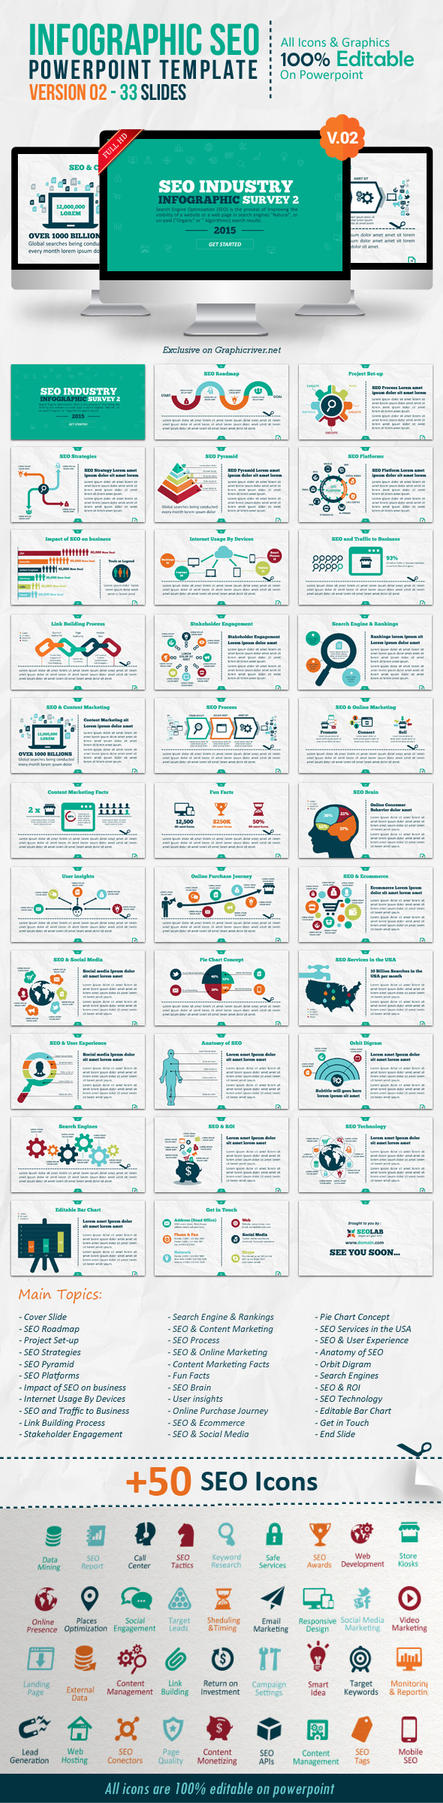 Infographic SEO Powerpoint Template - Version 02 by kh2838